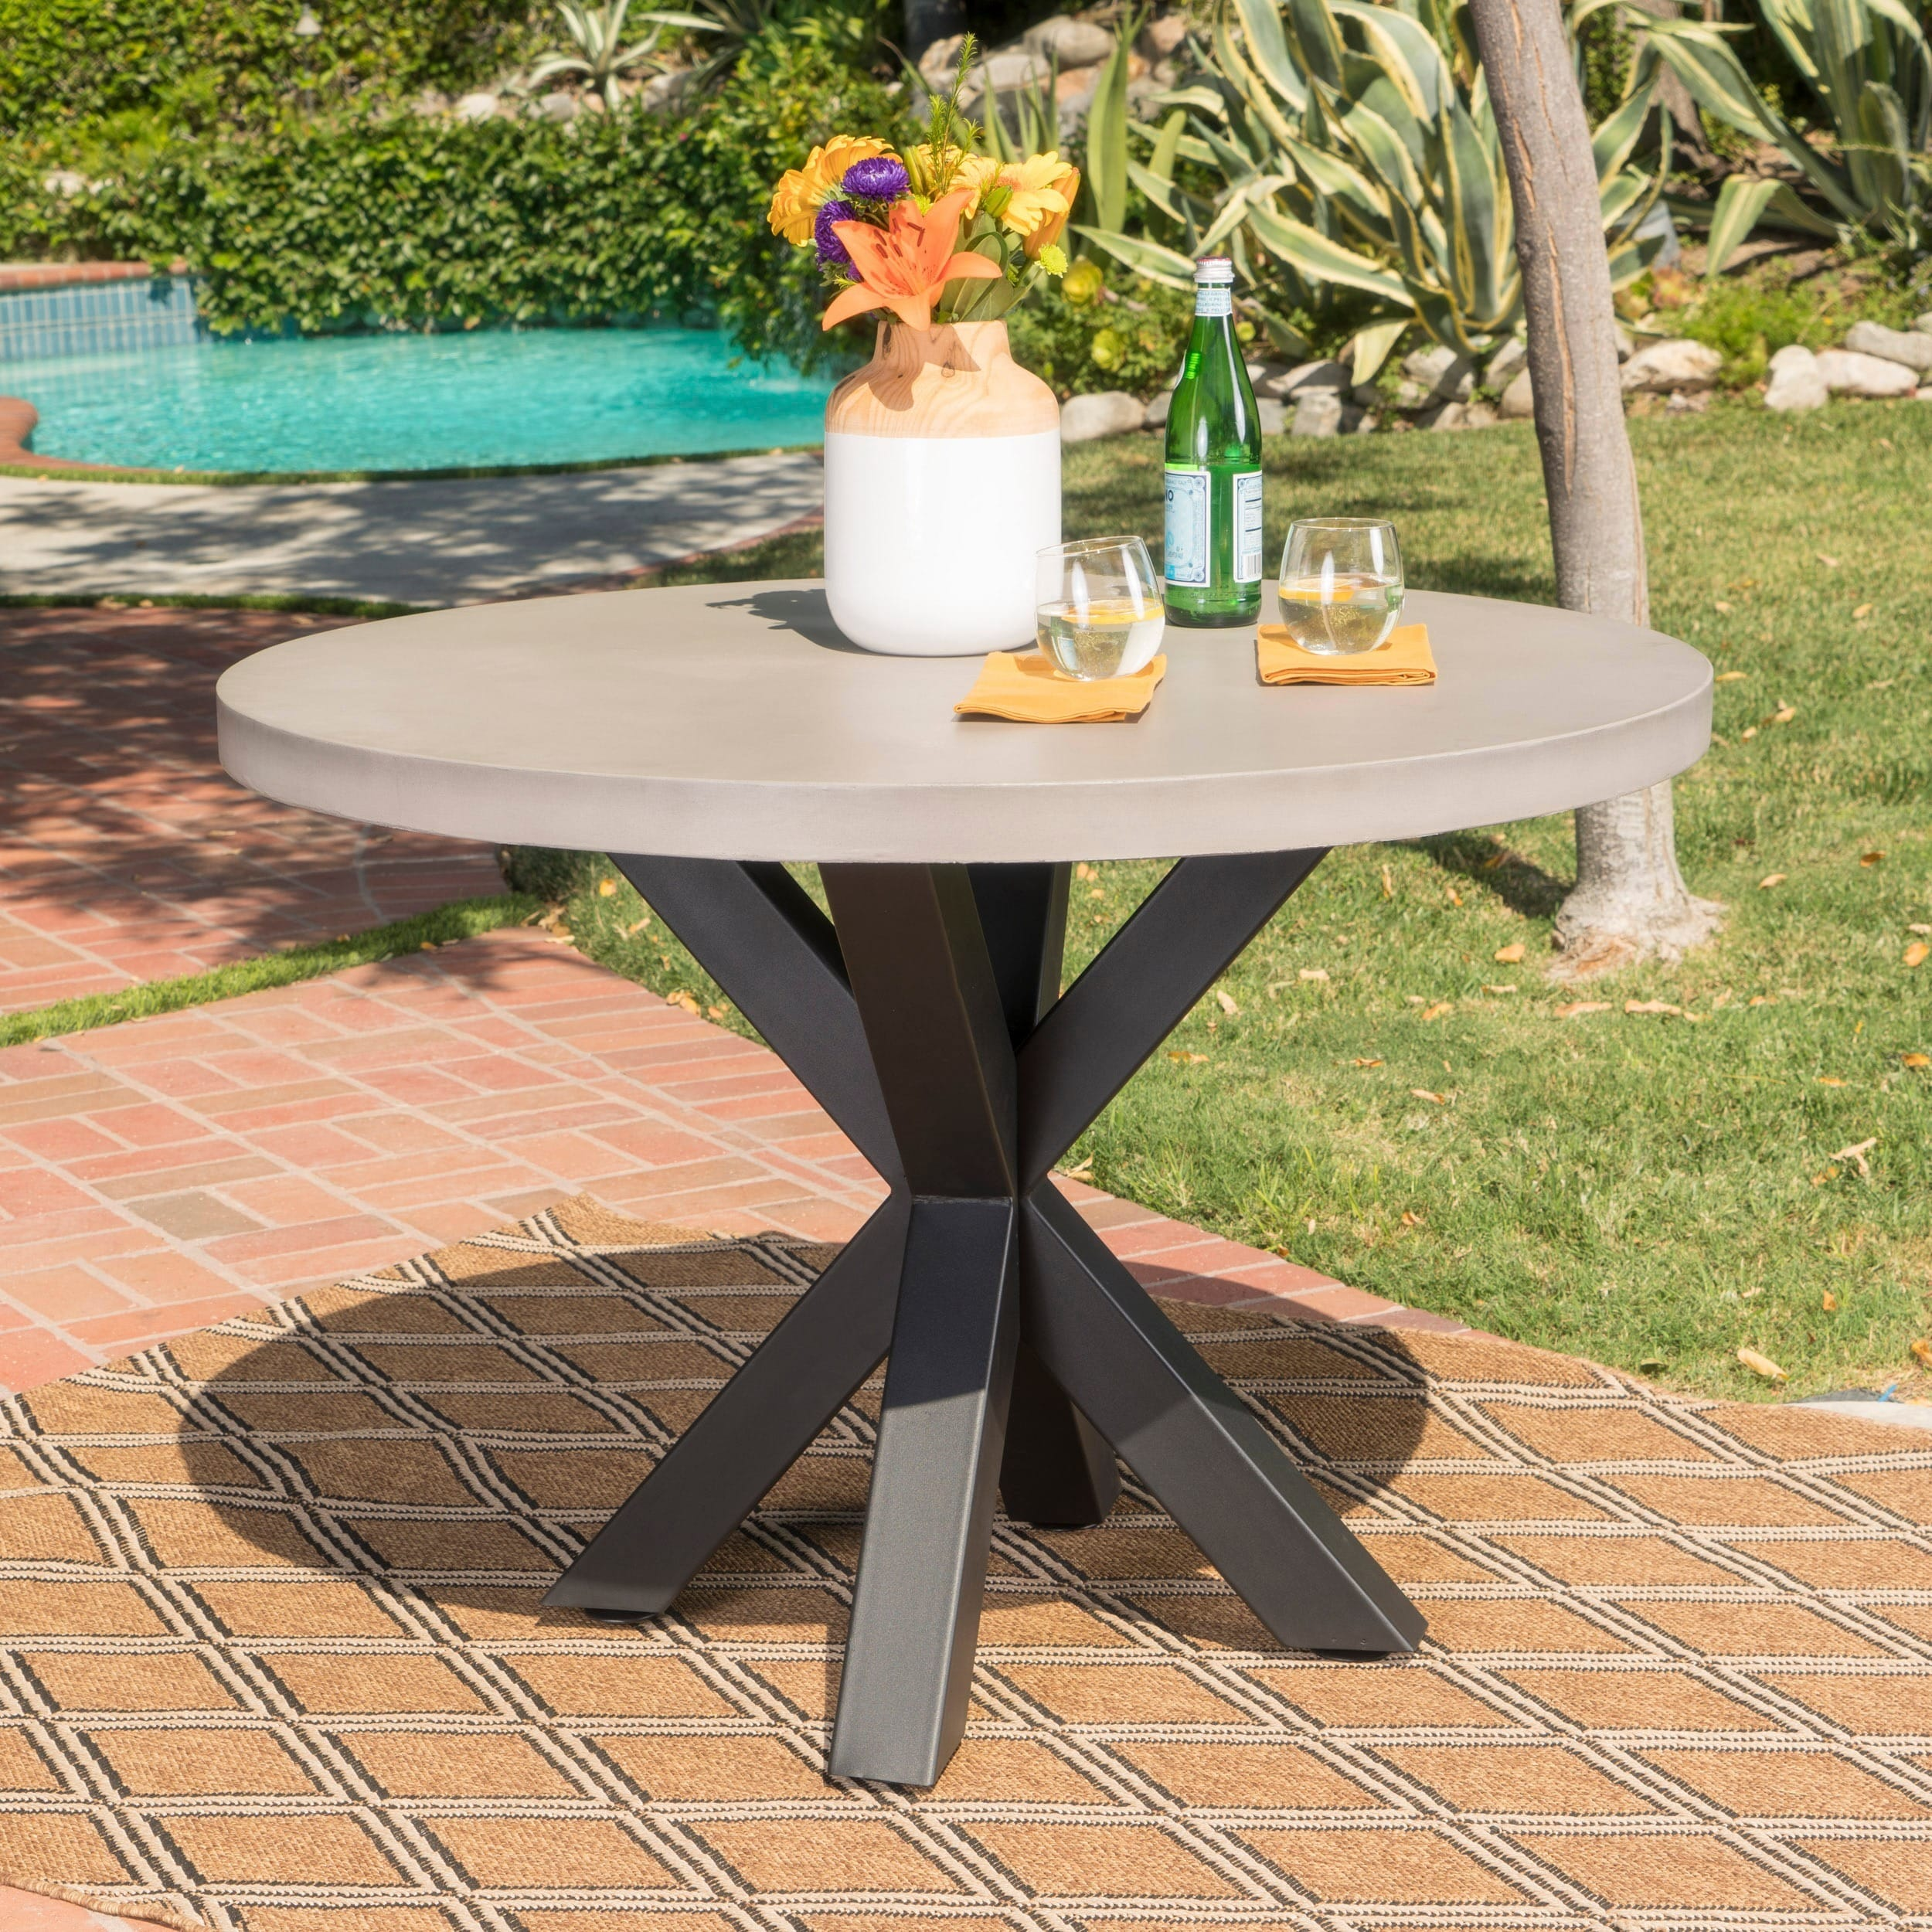 Shop Goleta Outdoor Modern Lightweight Concrete Circular Dining Table With Cross Base By Christopher Knight Home On Sale Overstock 16743283